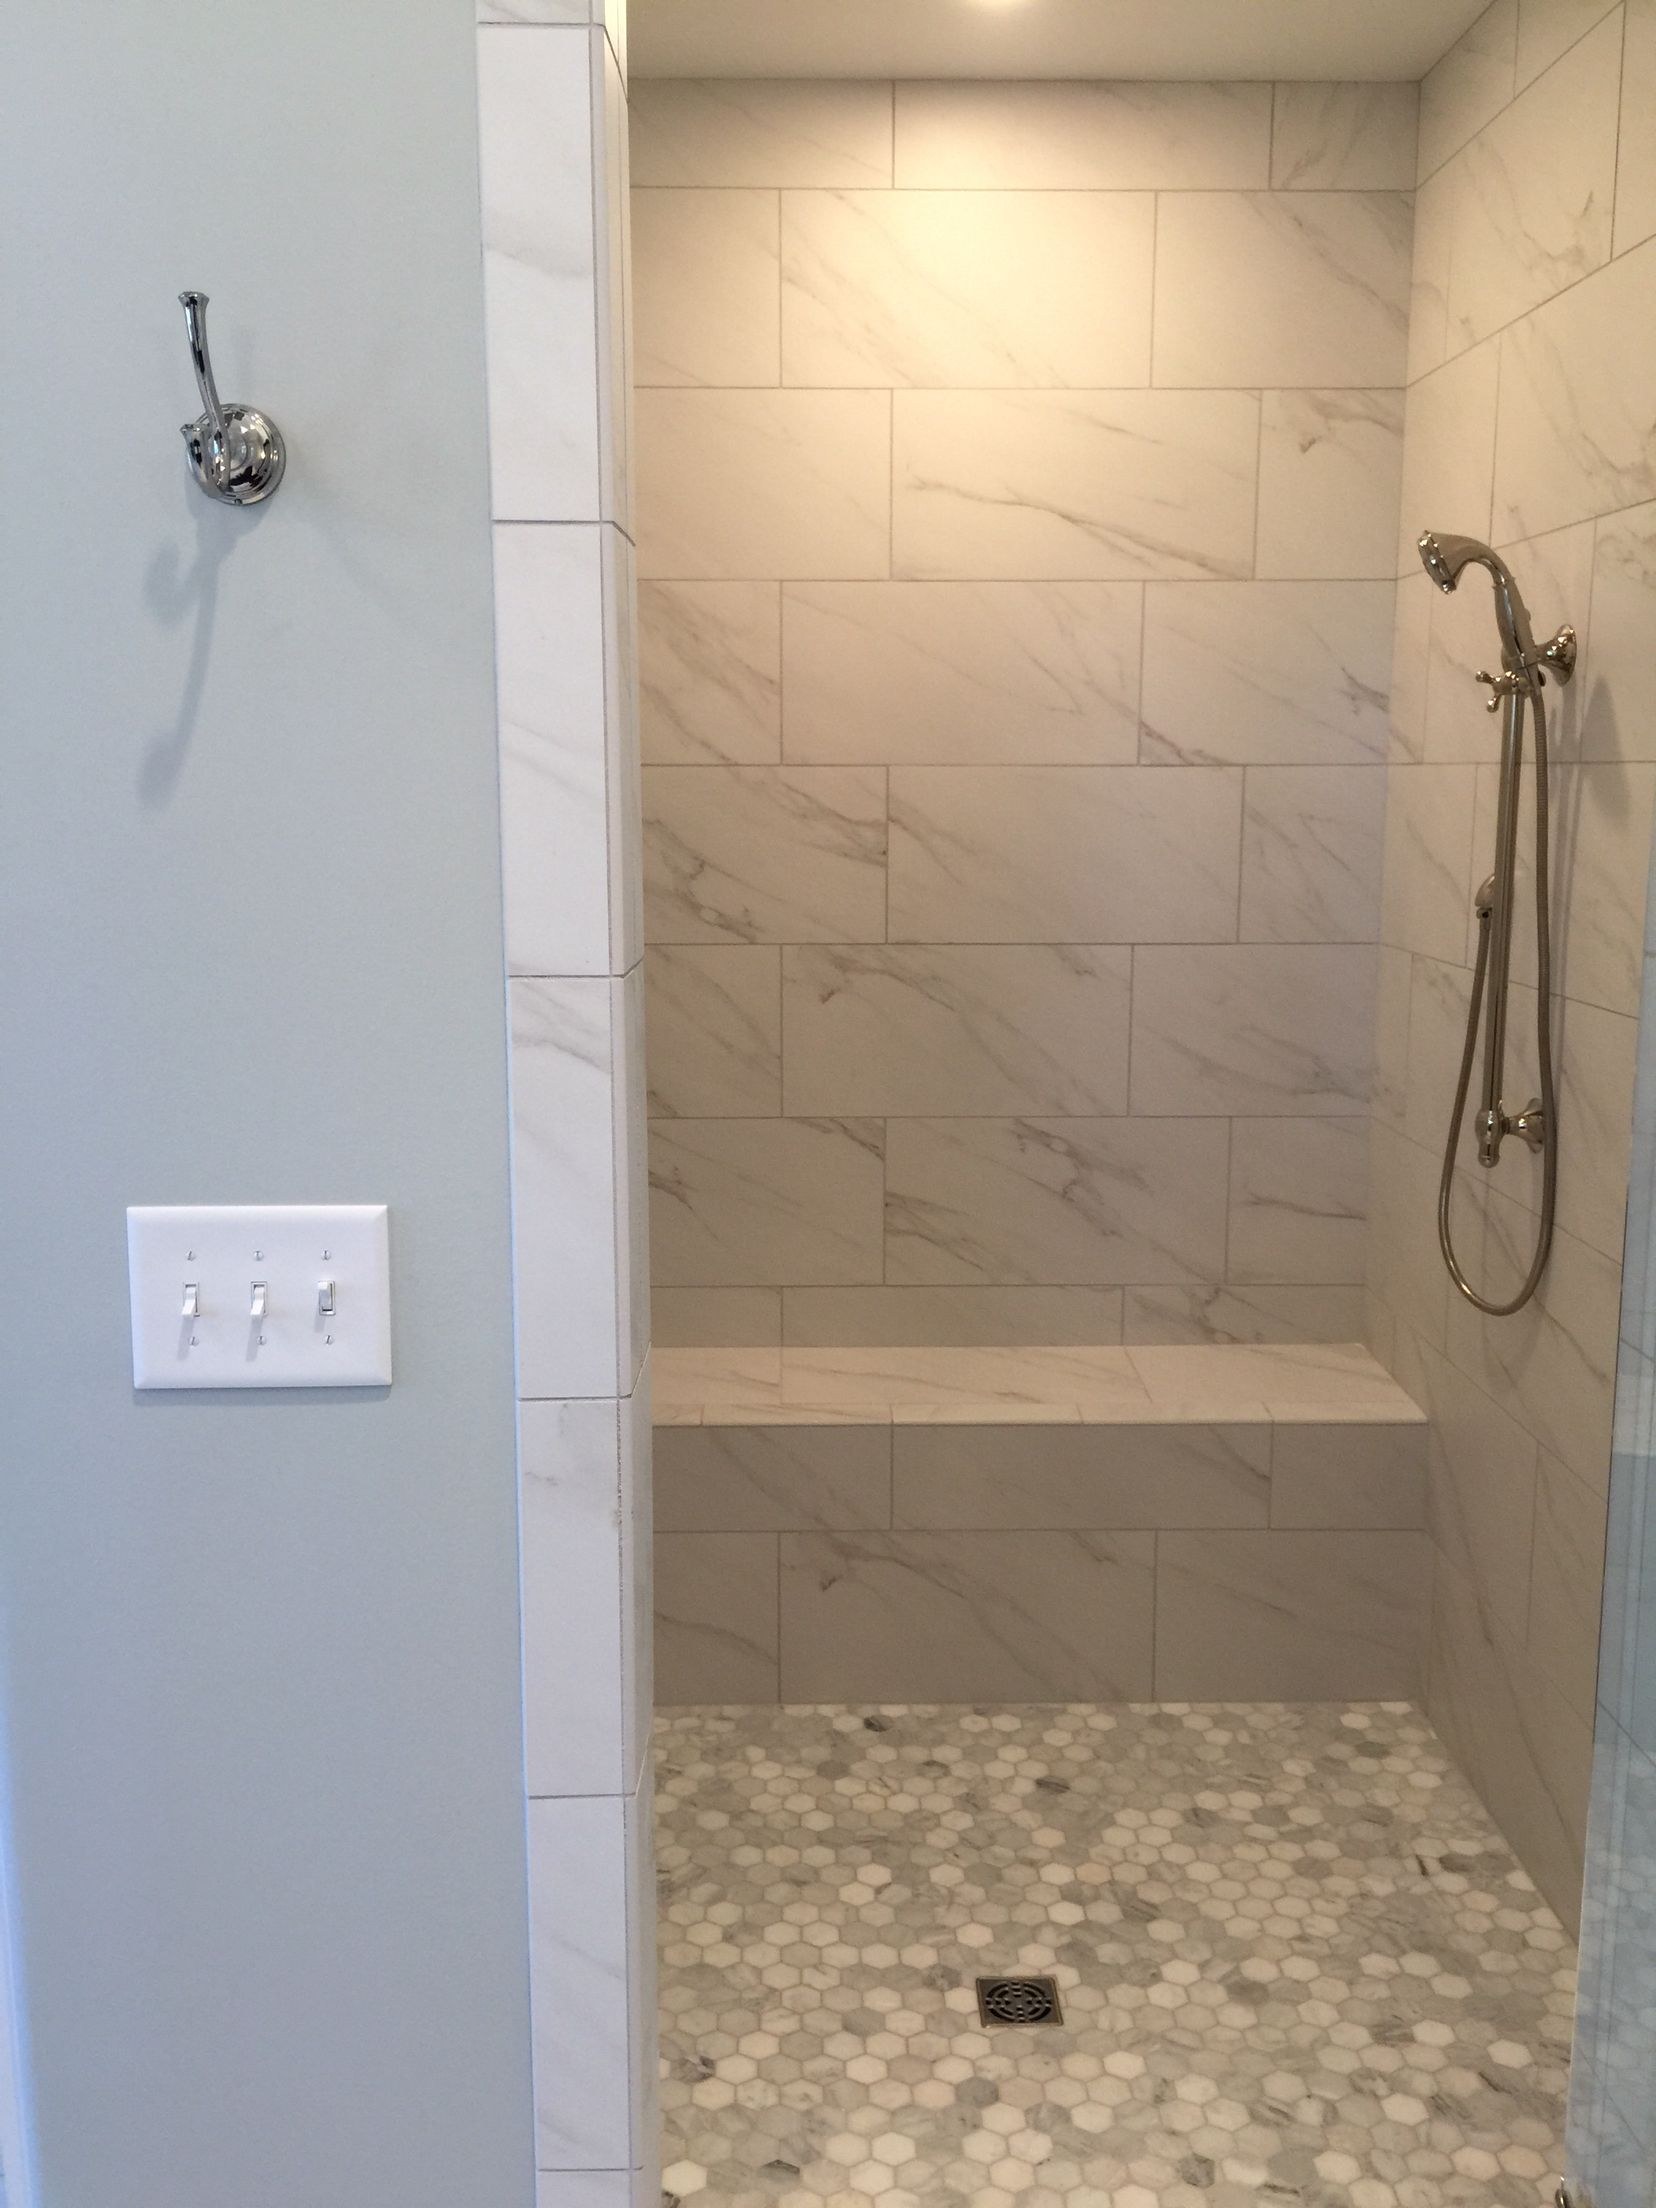 Hexagon Marble Tiles Paired With 12x24 Running Bond Subways Sherwin Williams Silver Strand Walls Bathroom Remodel Master Tile Bathroom Bathroom Makeover